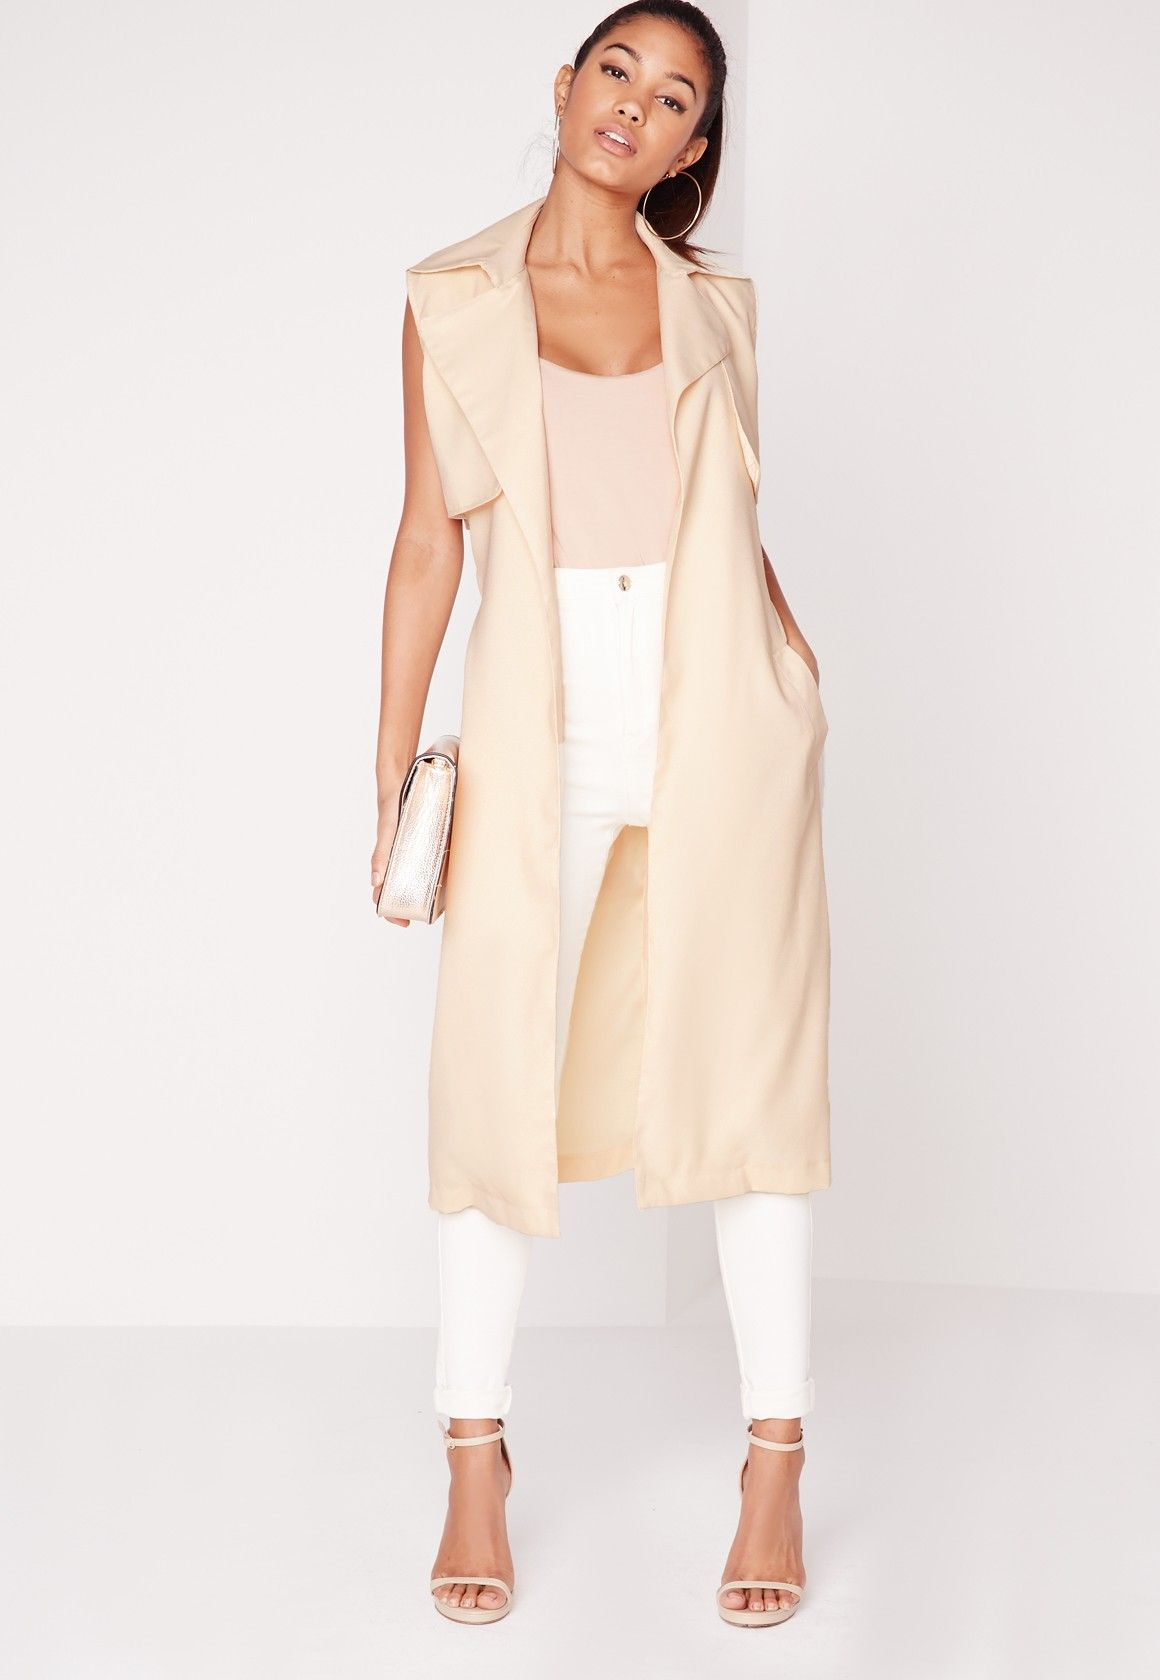 5743418fbc Missguided - Arabela Camel Sleeveless Lightweight Trench Coat More